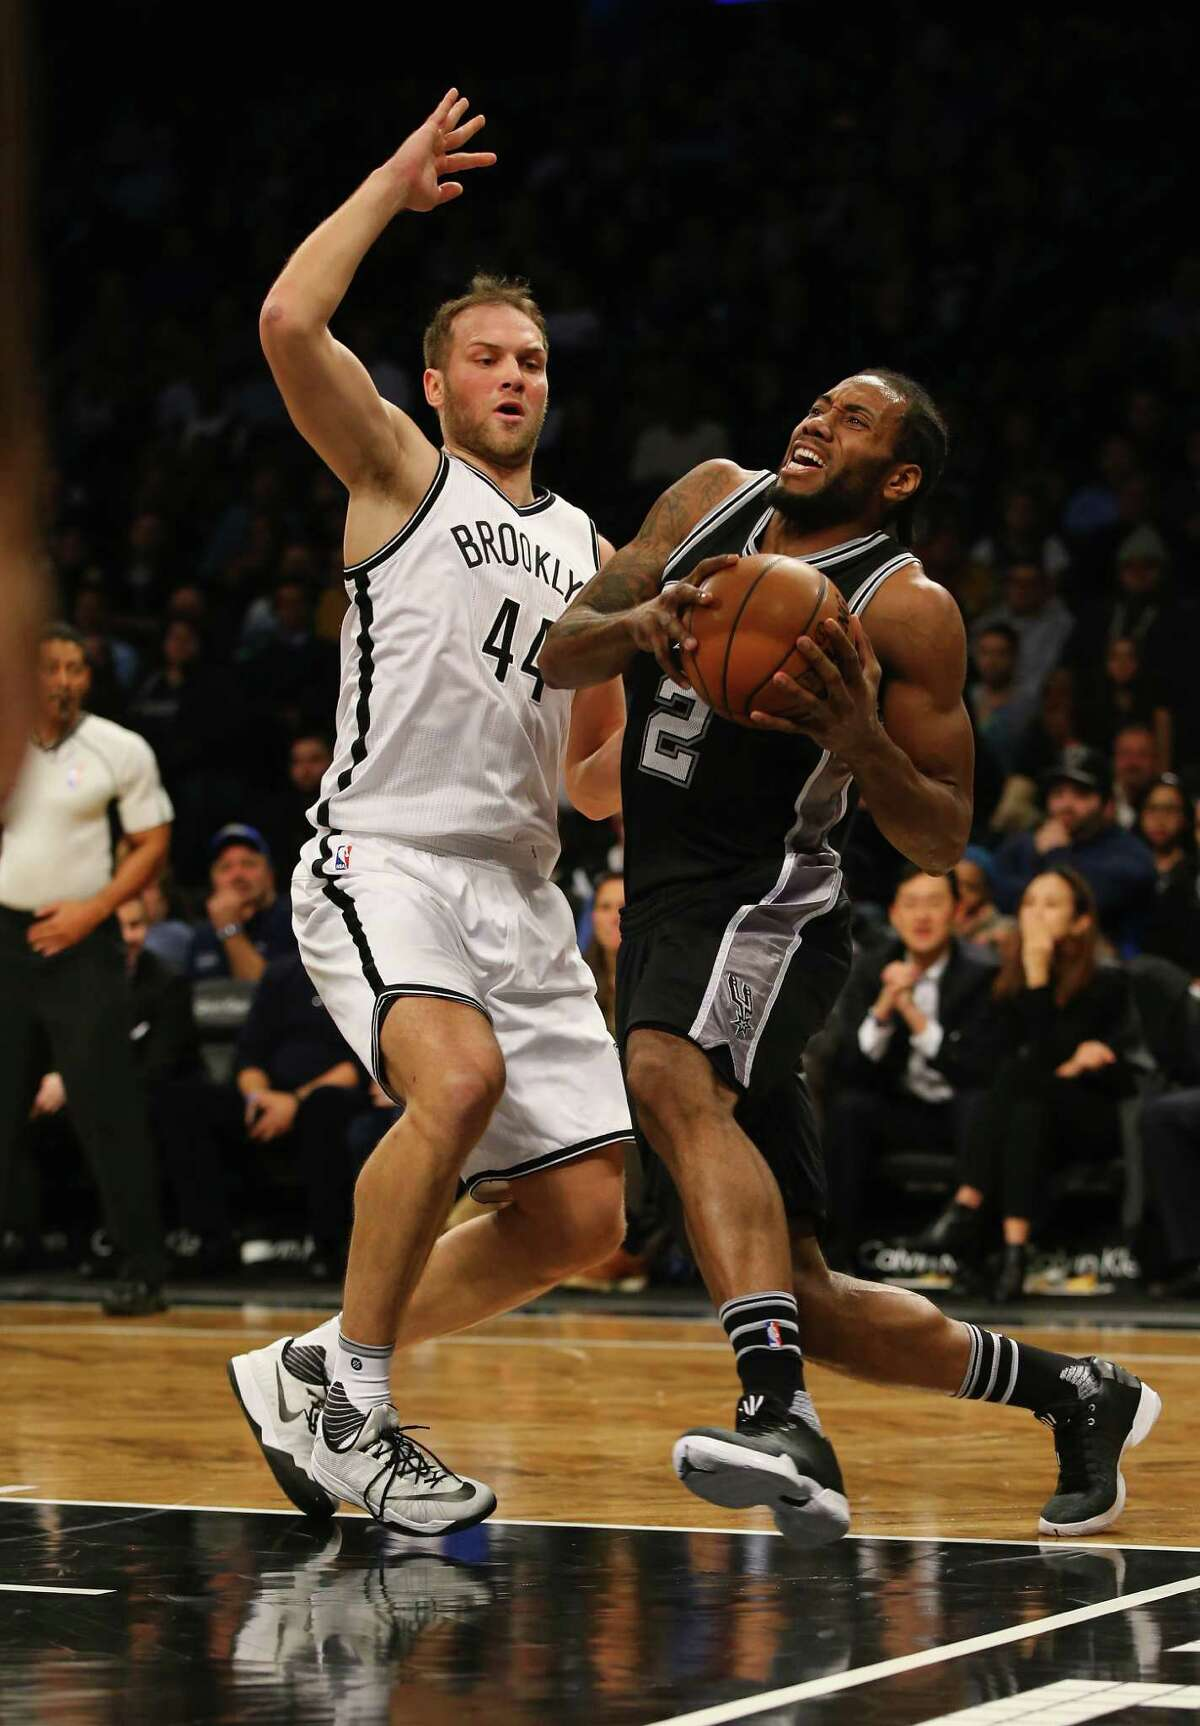 NEW YORK, NY - JANUARY 11: Kawhi Leonard #2 of the San Antonio Spurs drives against Bojan Bogdanovic #44 of the Brooklyn Nets during their game at the Barclays Center on January 11, 2016 in New York City. NOTE TO USER: User expressly acknowledges and agrees that, by downloading and/or using this Photograph, user is consenting to the terms and conditions of the Getty Images License Agreement.